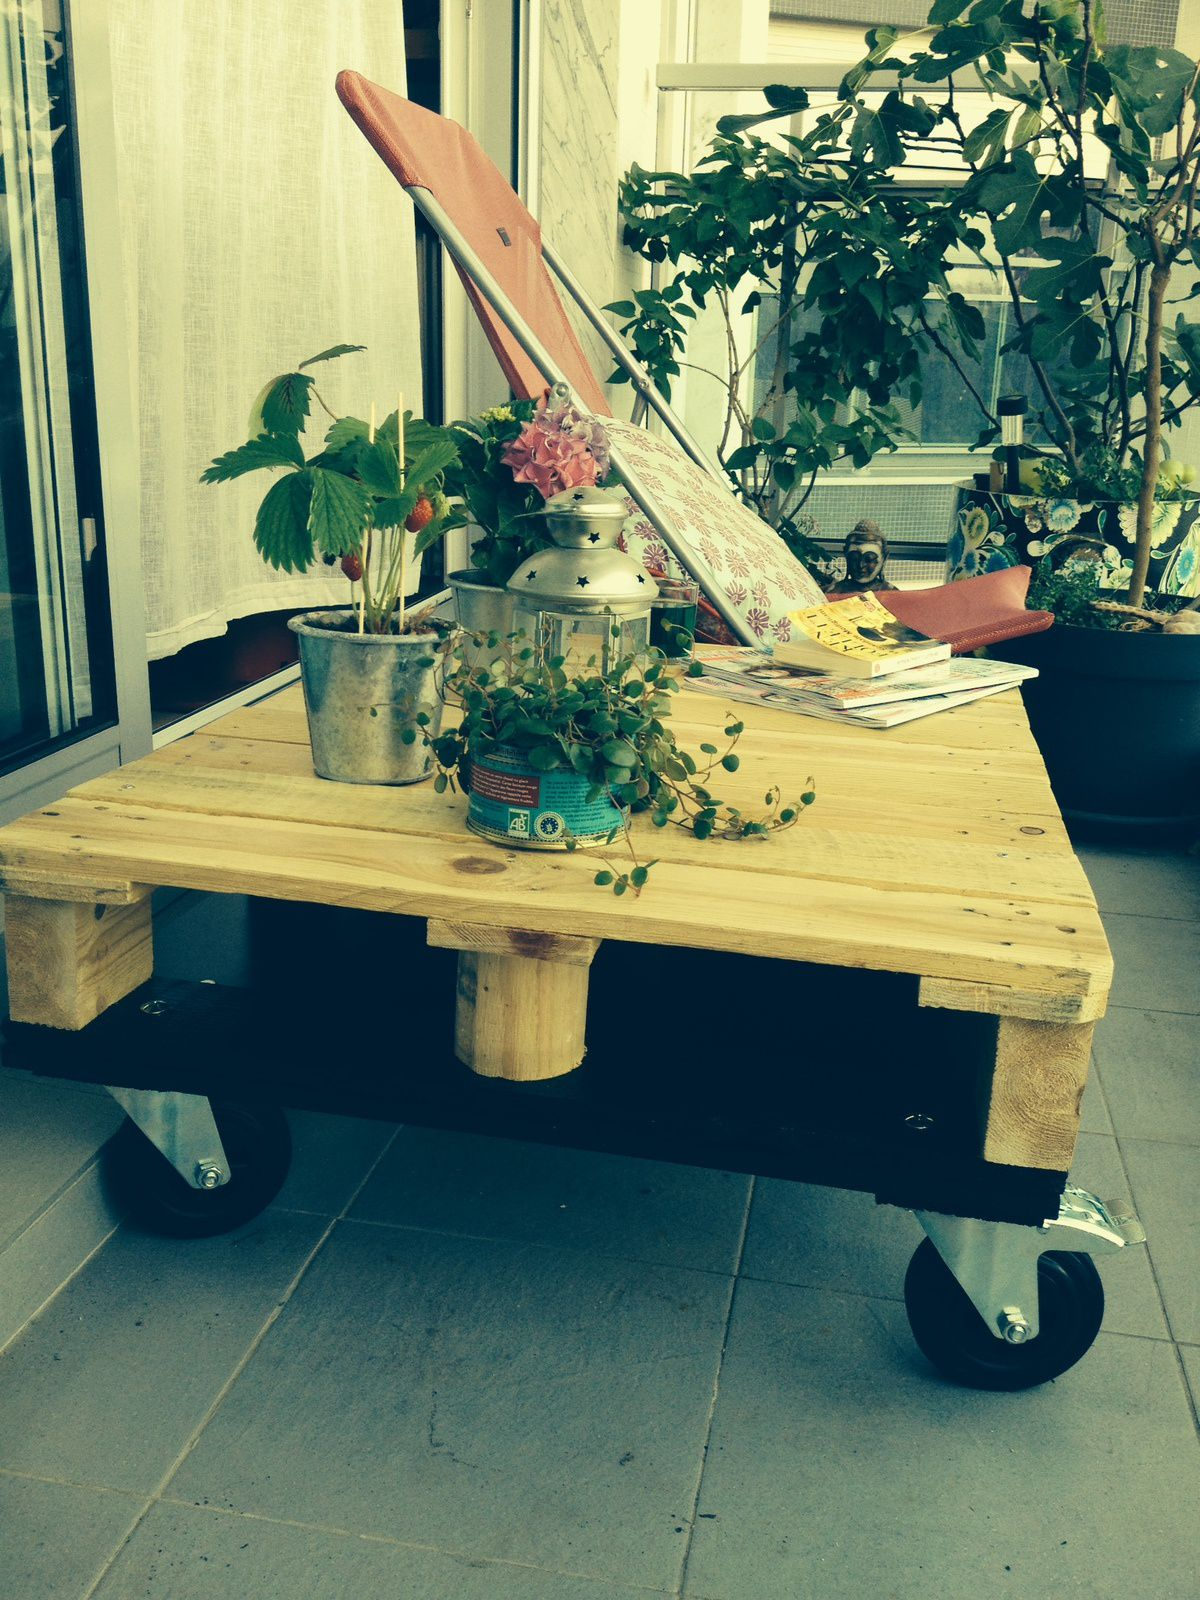 Nos derni res cr ations de tables basses palette roulettes d co et recycl - Creation table basse ...